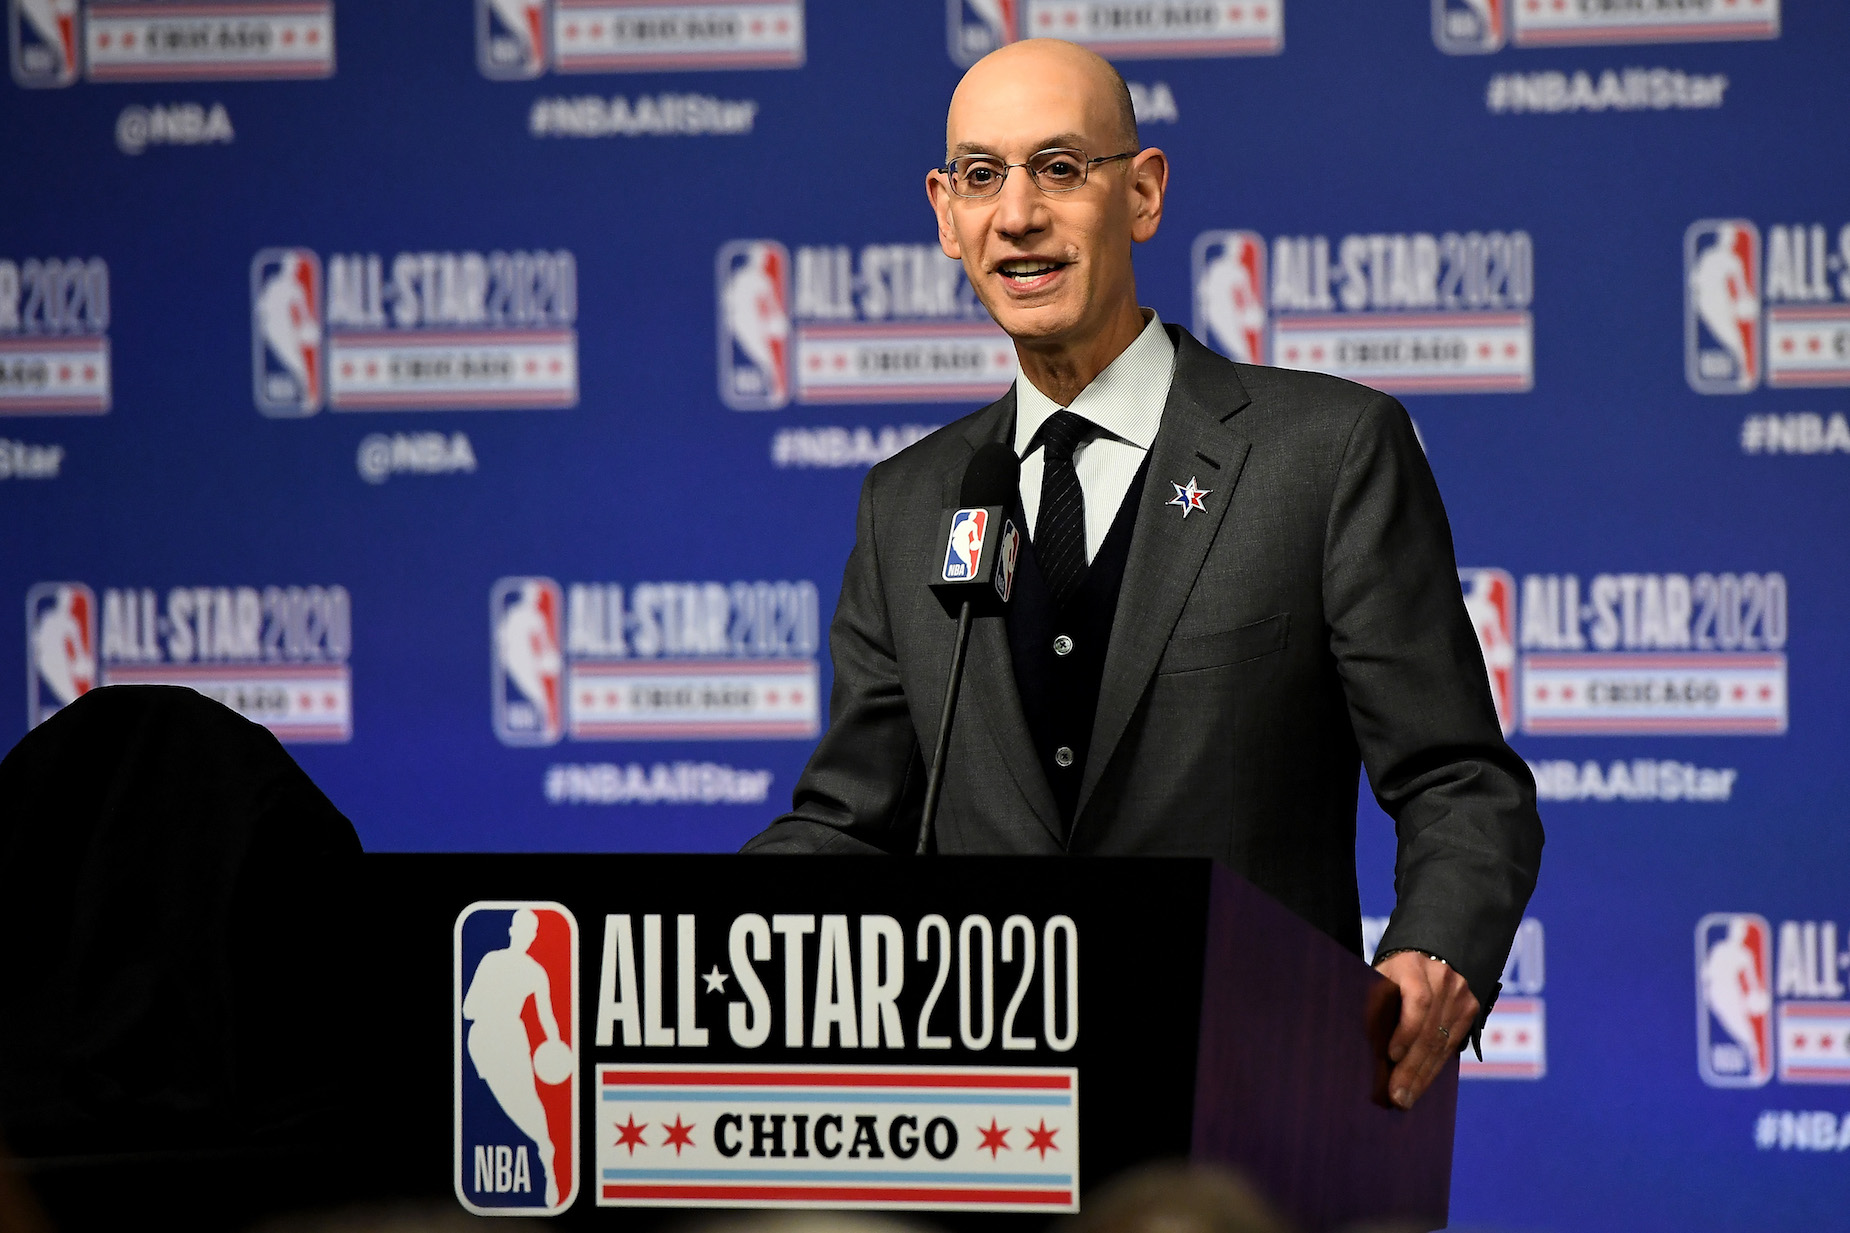 What is NBA commissioner Adam Silver's net worth?